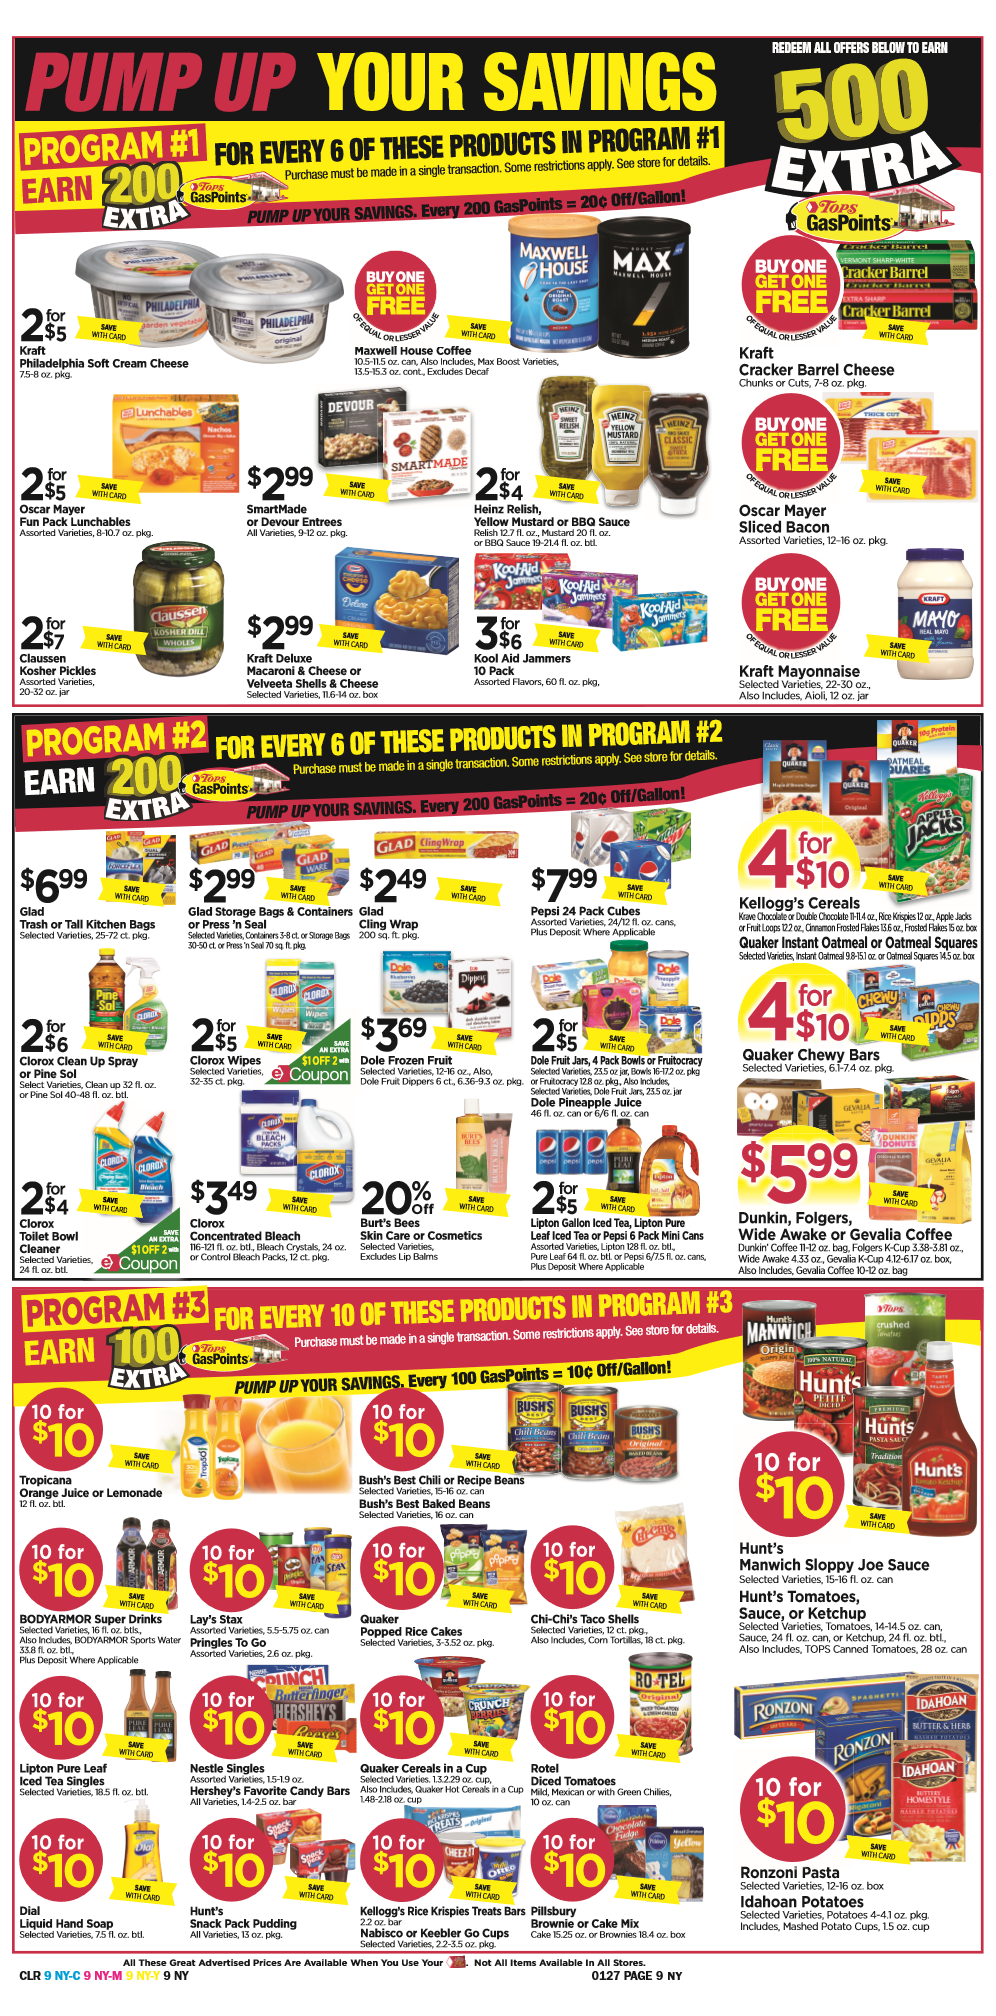 Scannable grocery coupons